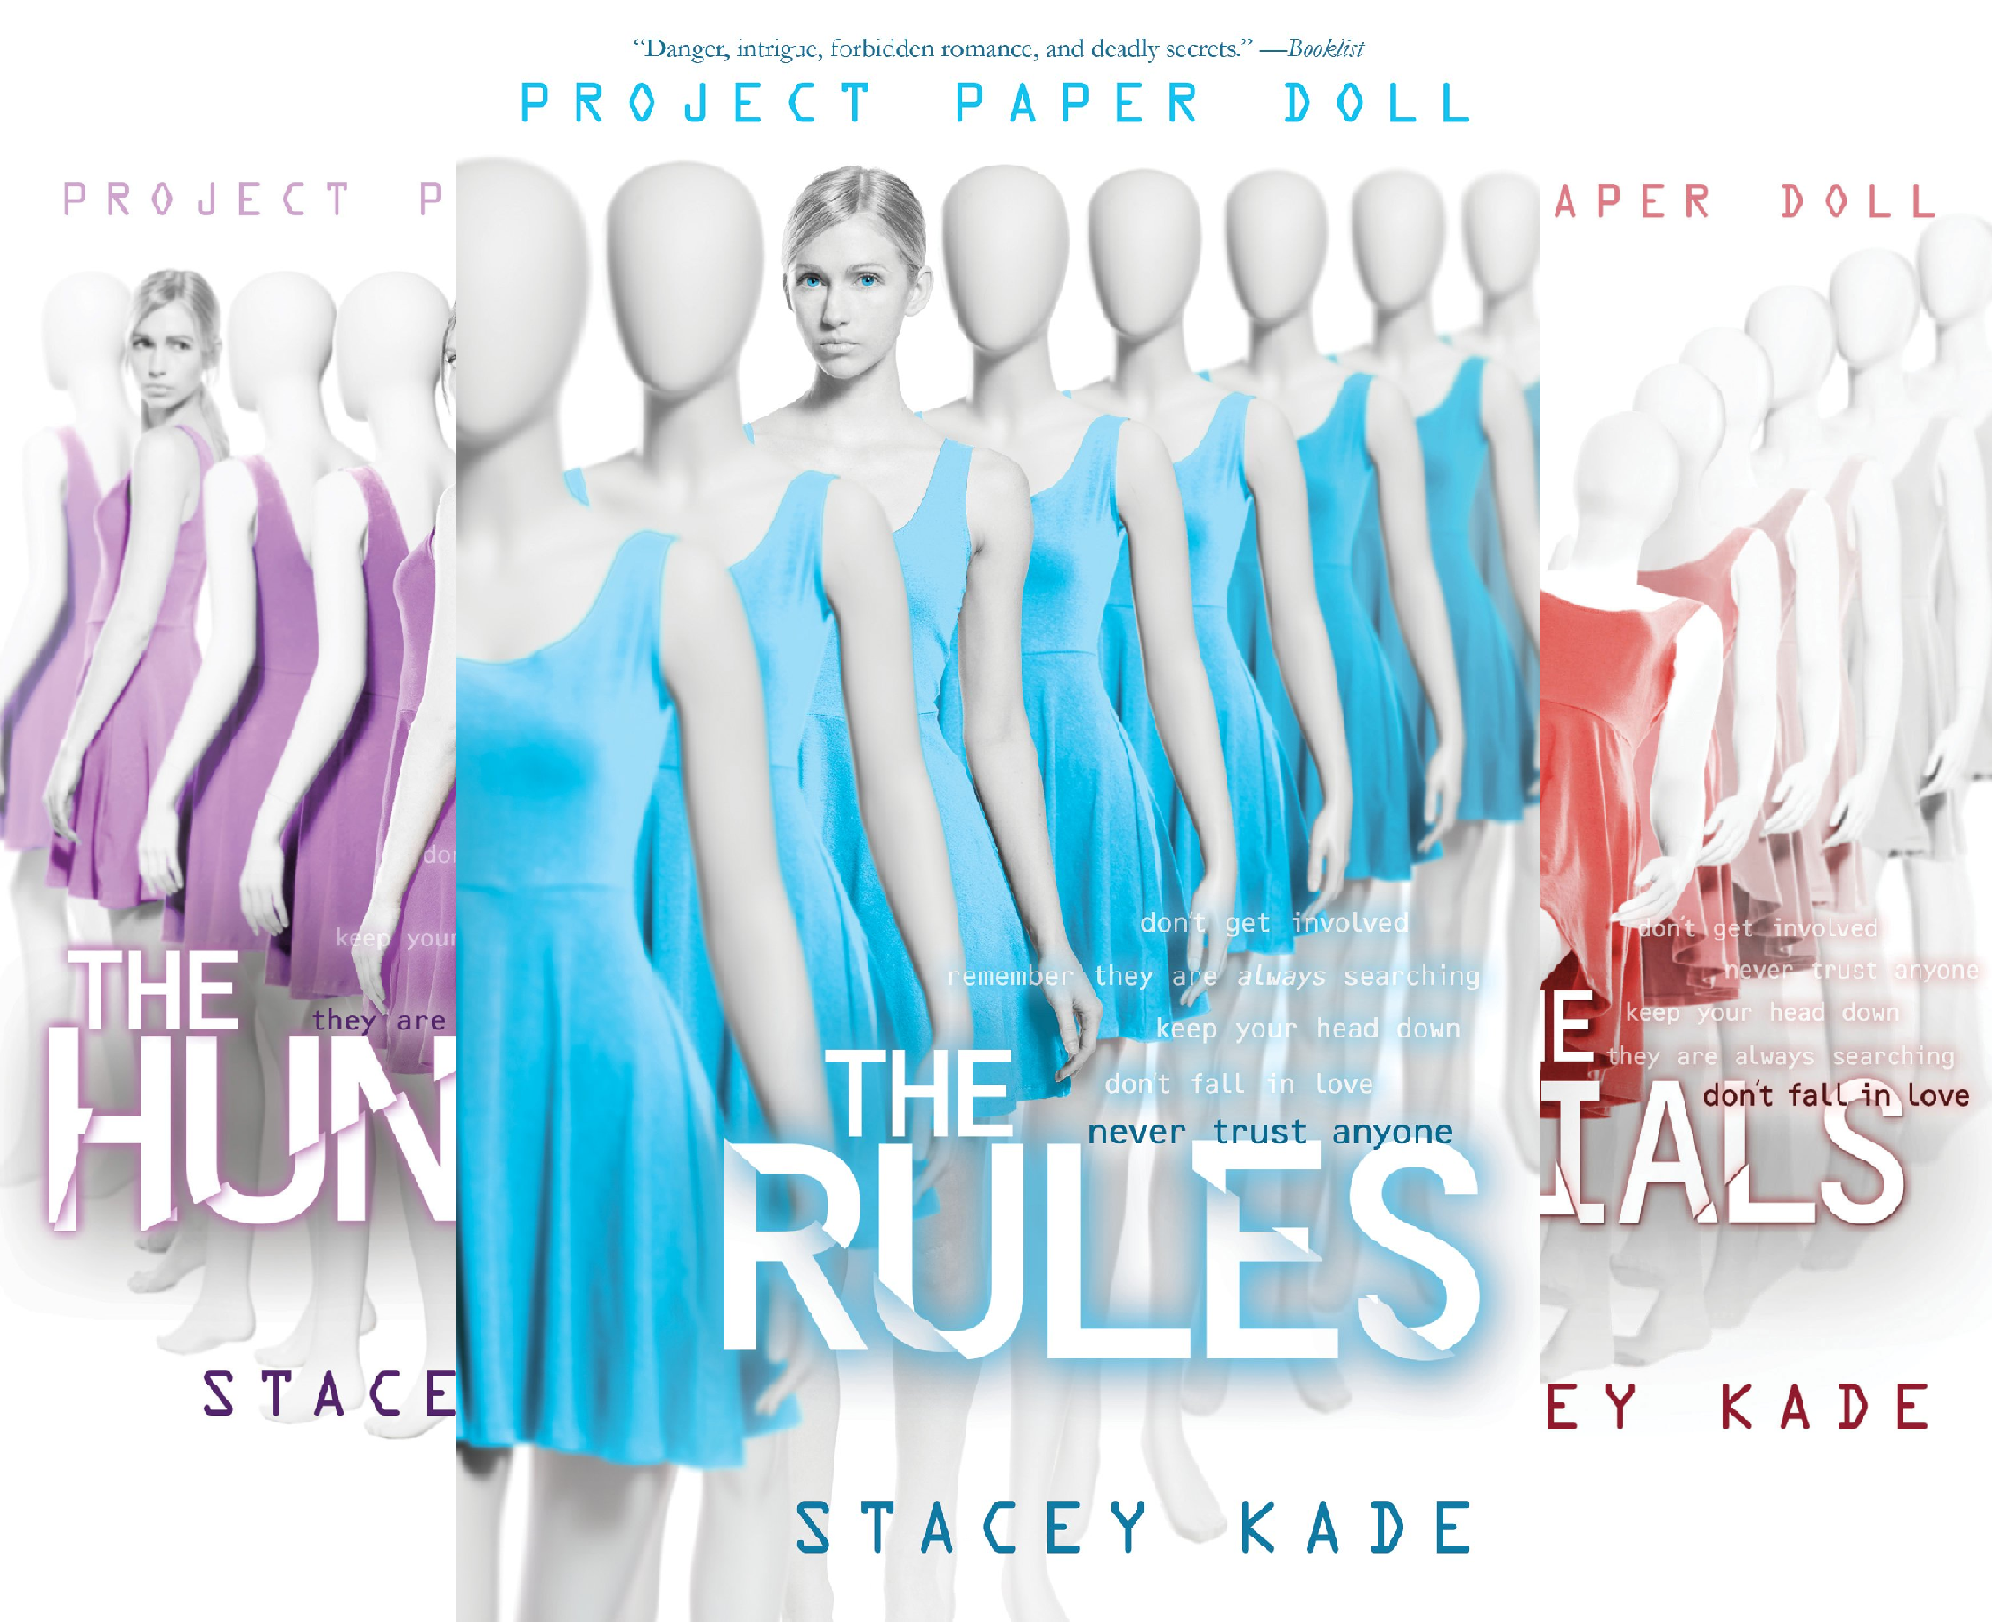 Project Paper Doll